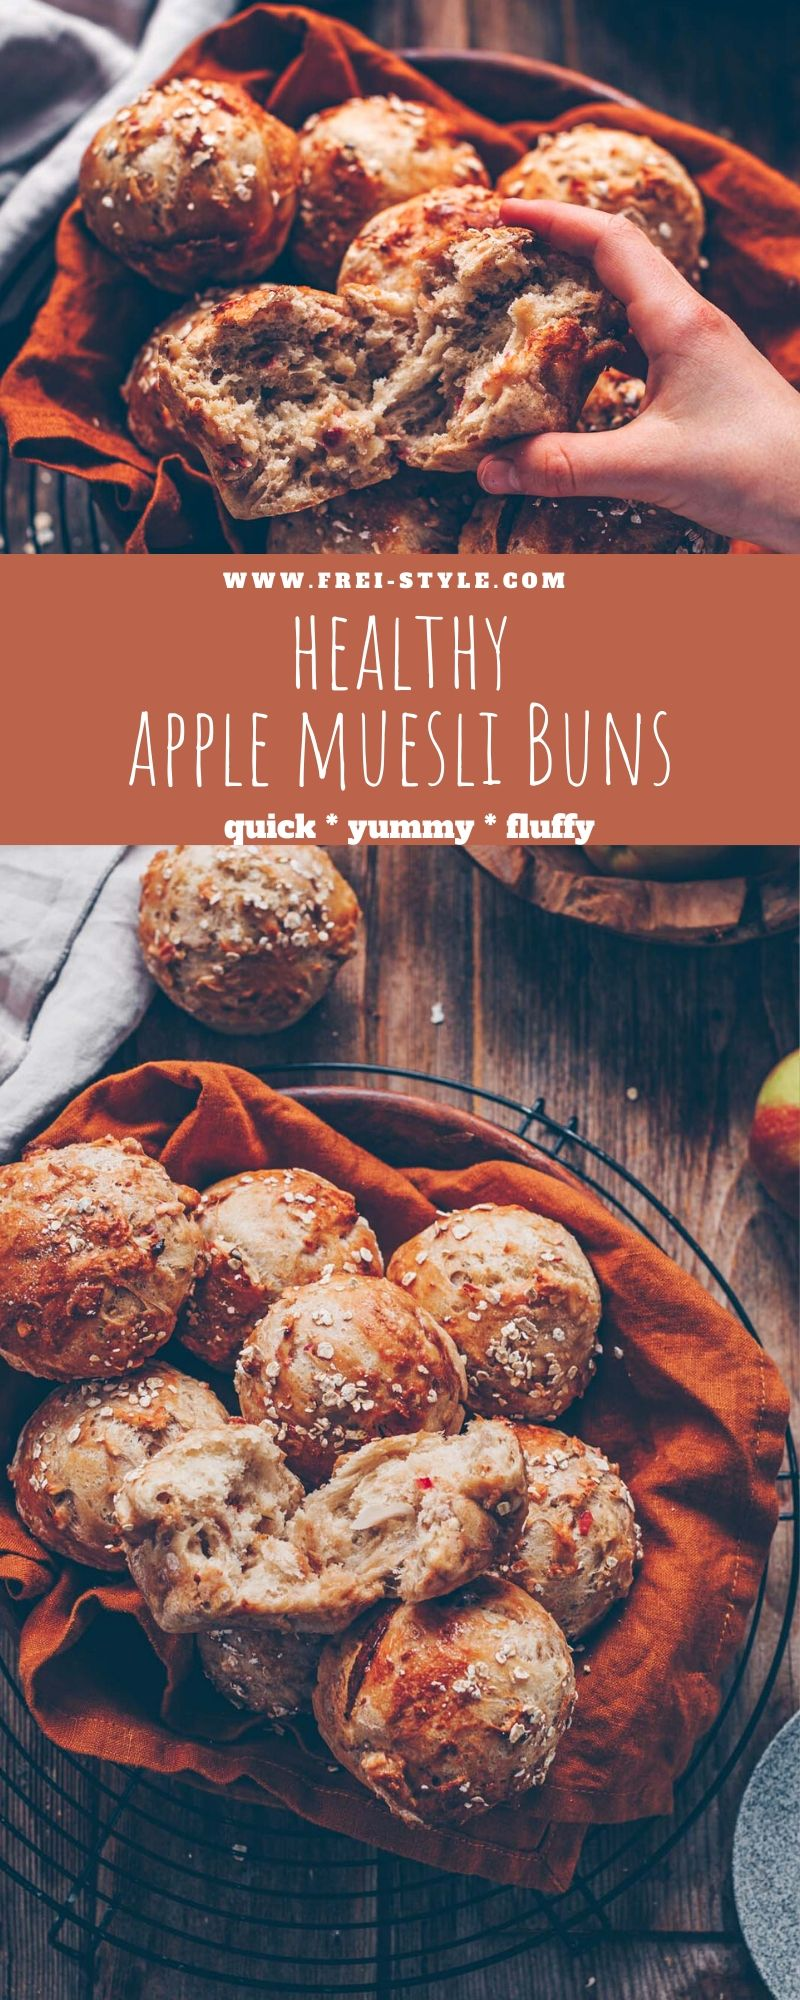 Healthy Apple Muesli Buns